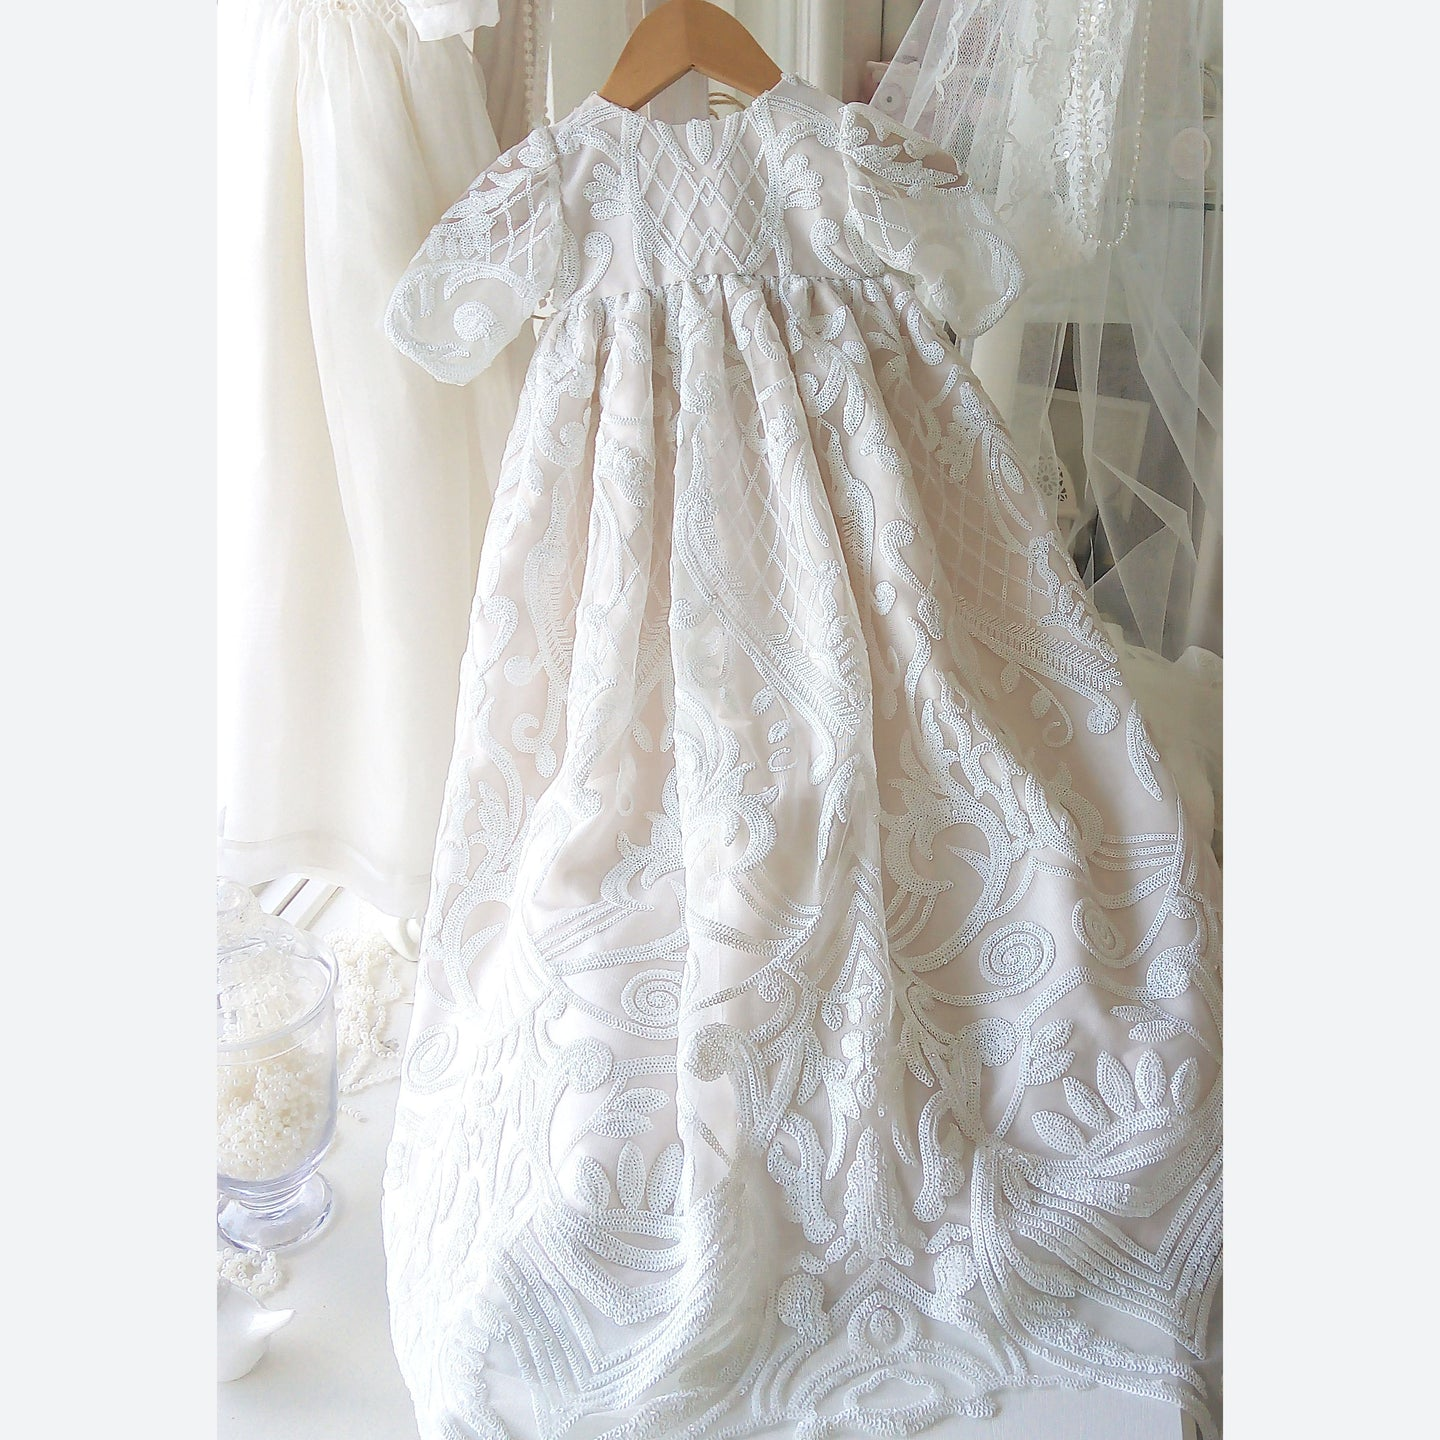 princess-zara-girls-christening-gown